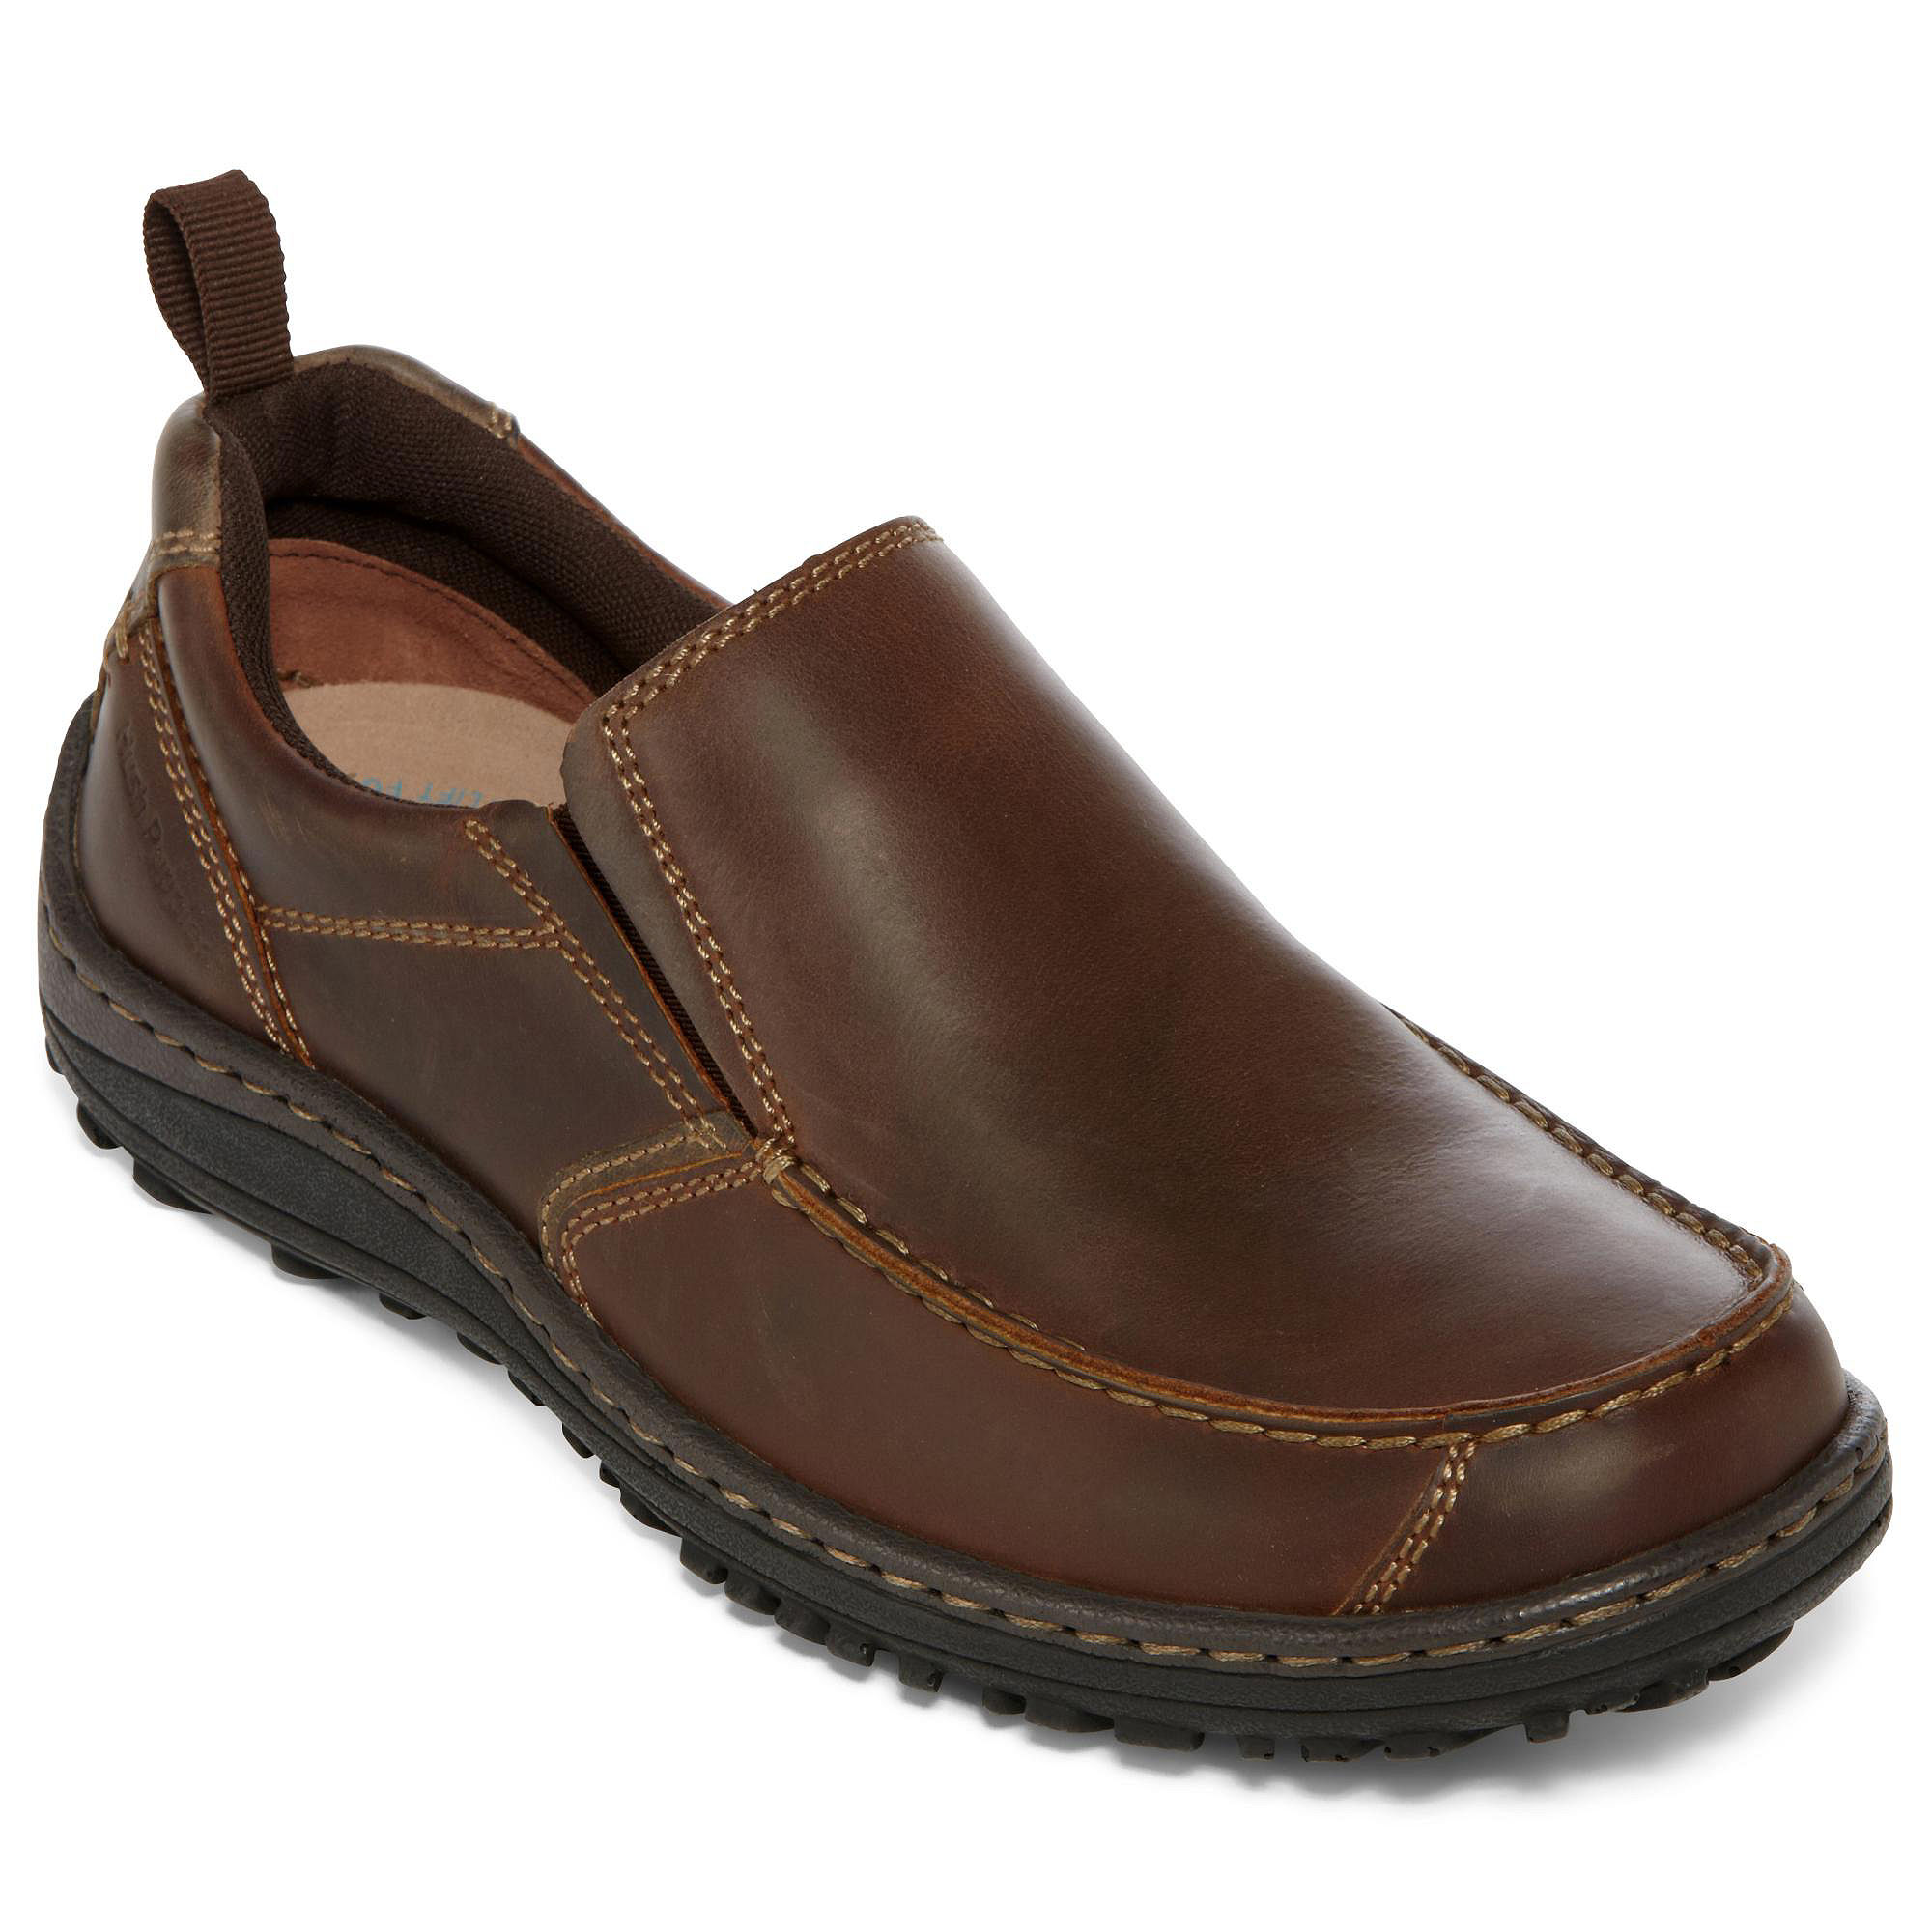 hush puppies belfast mens slip on shoes shop your way online shopping earn points on tools. Black Bedroom Furniture Sets. Home Design Ideas